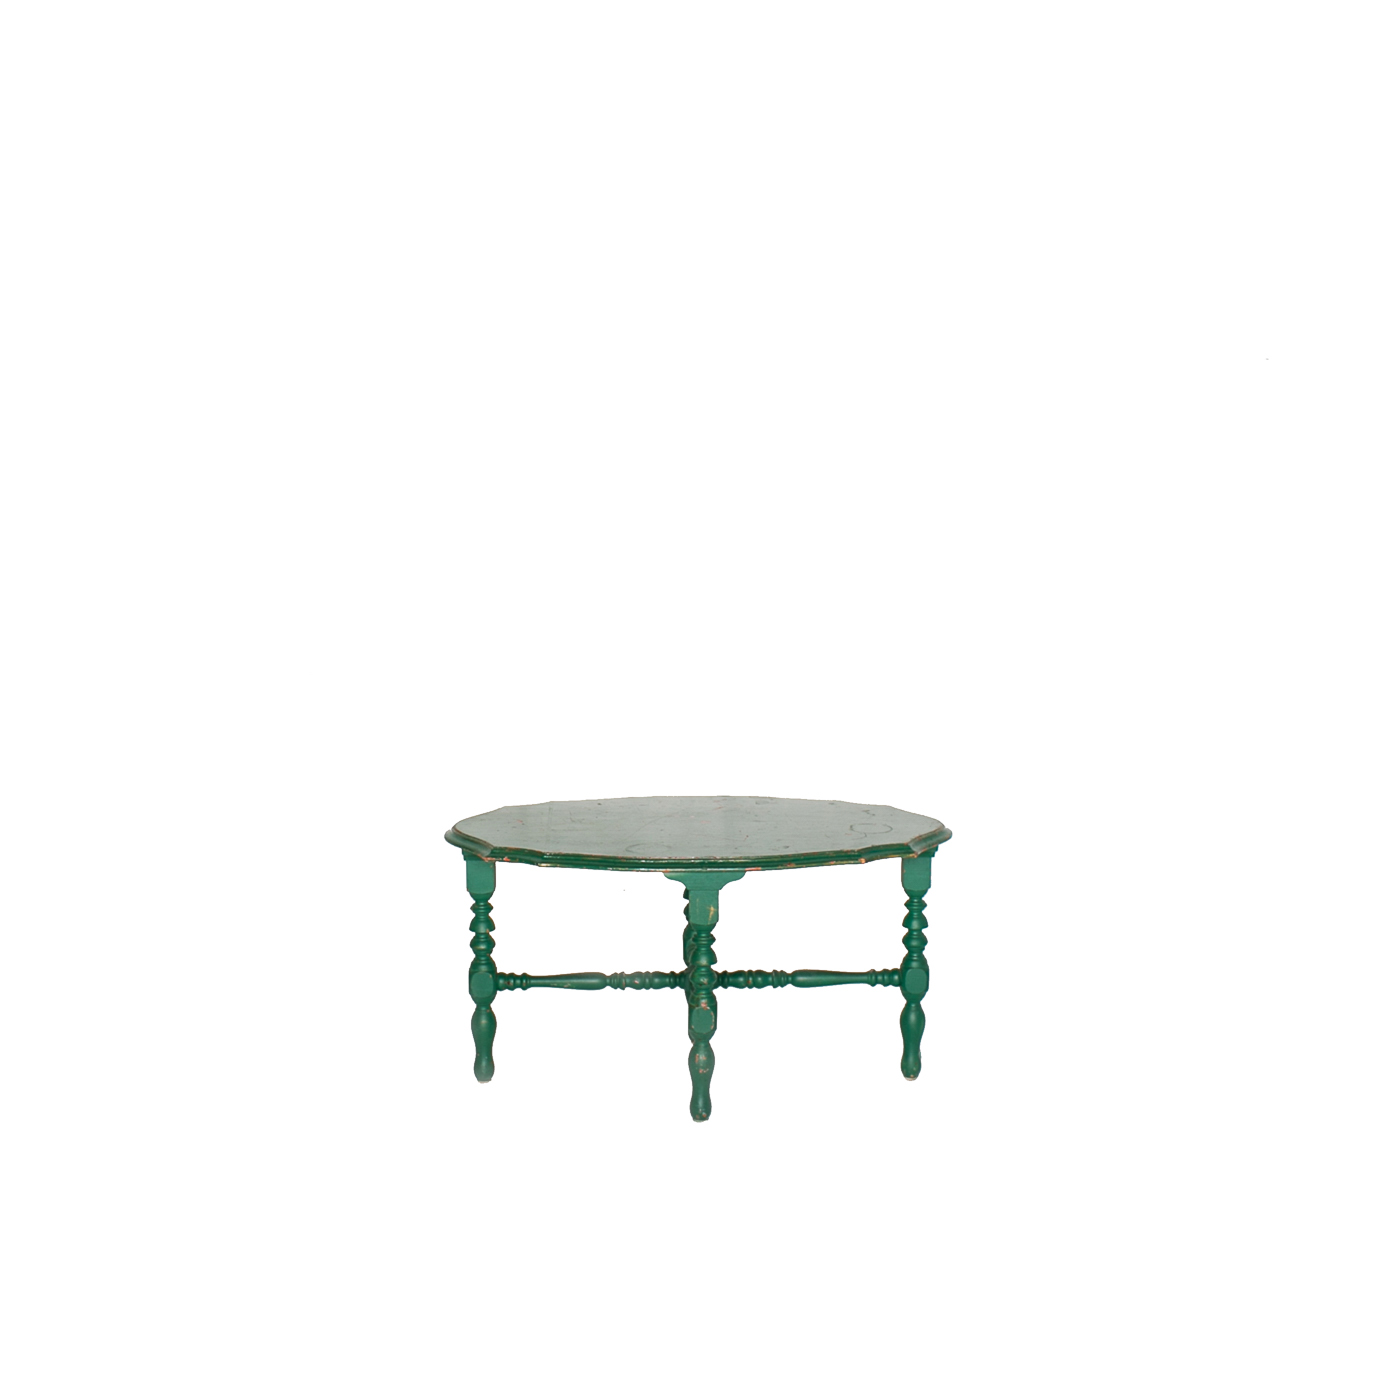 green archives pow wow design studio emerald accent table nomad bath tray decorative wine rack white top end huge wall clock weber grill hammered metal coffee cherry buffet legion